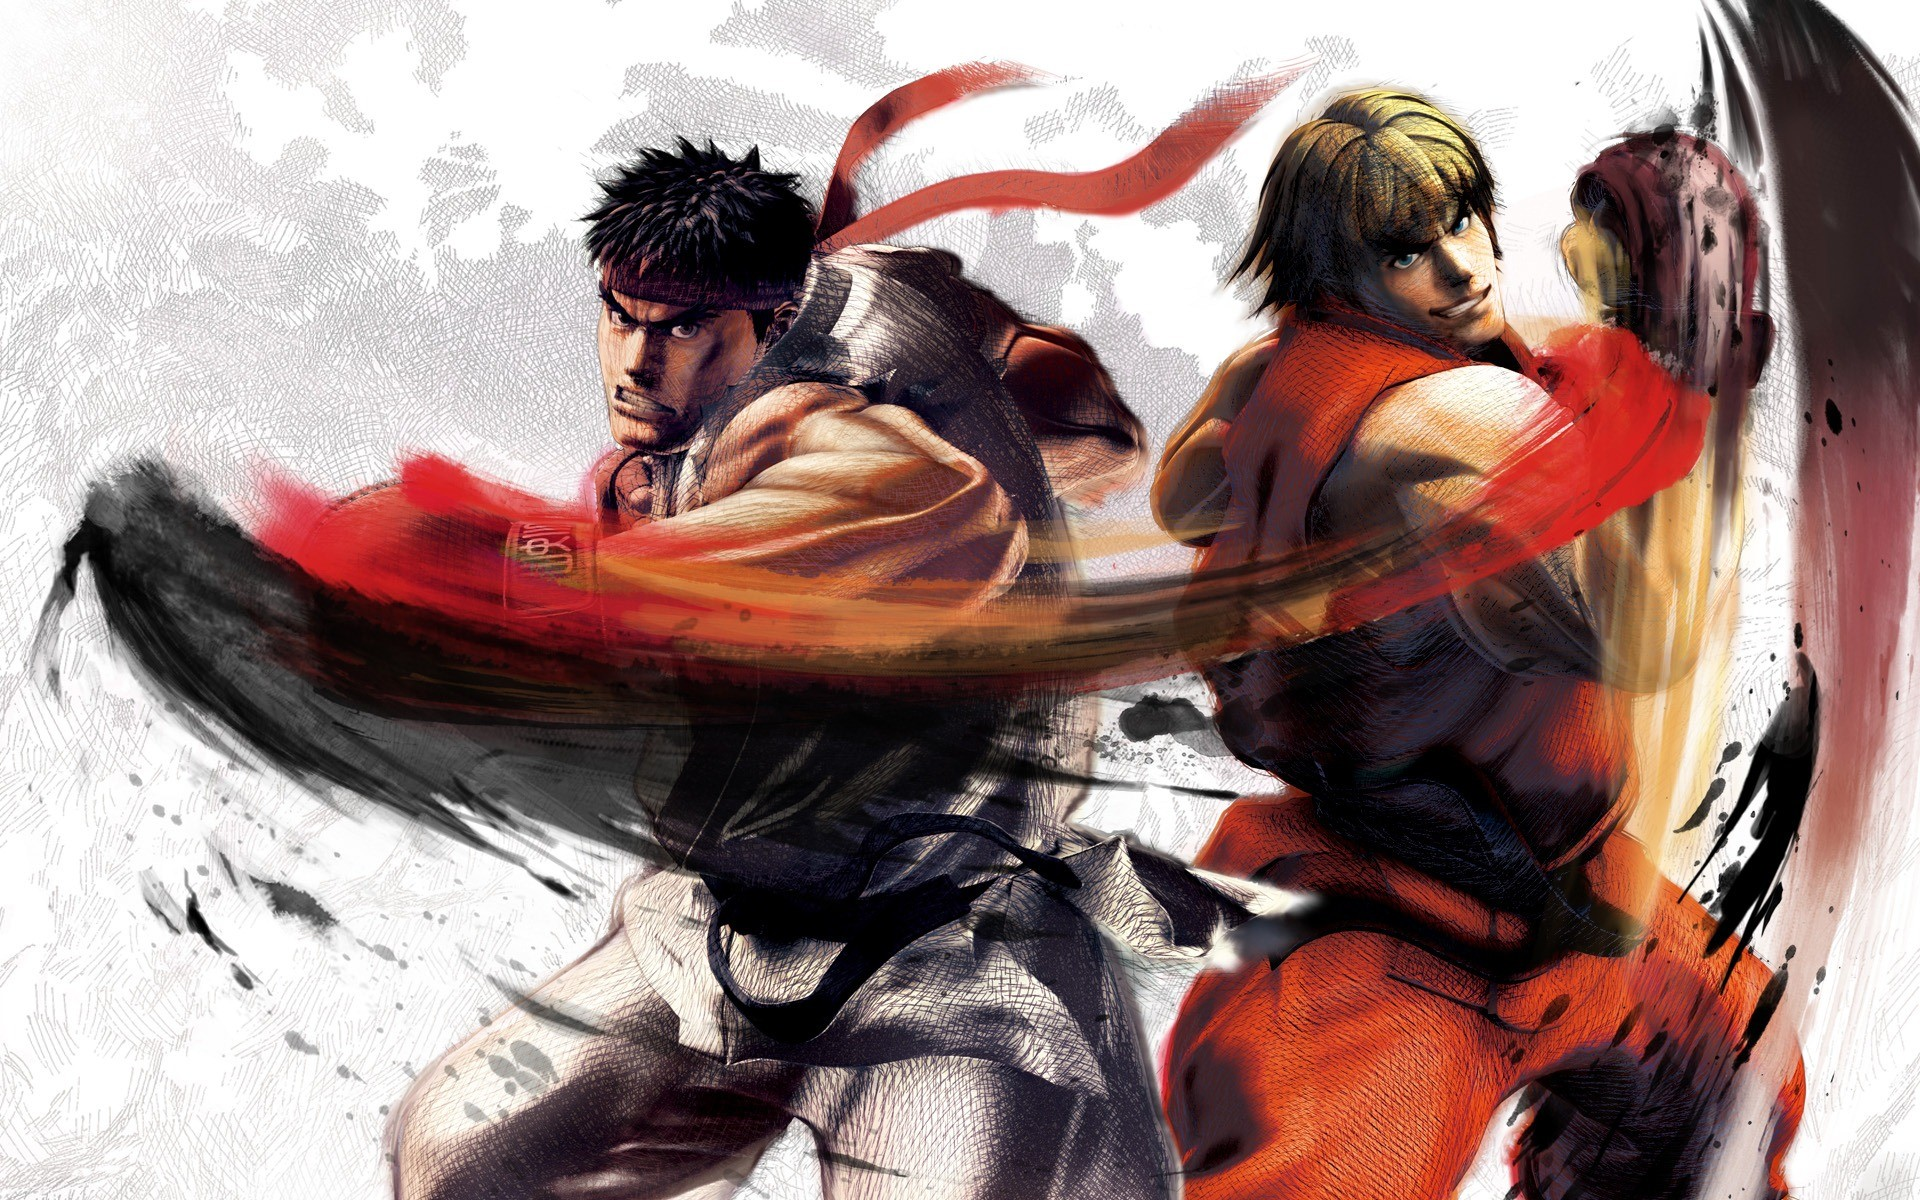 Street Fighter Wallpaper Hd 65 Pictures